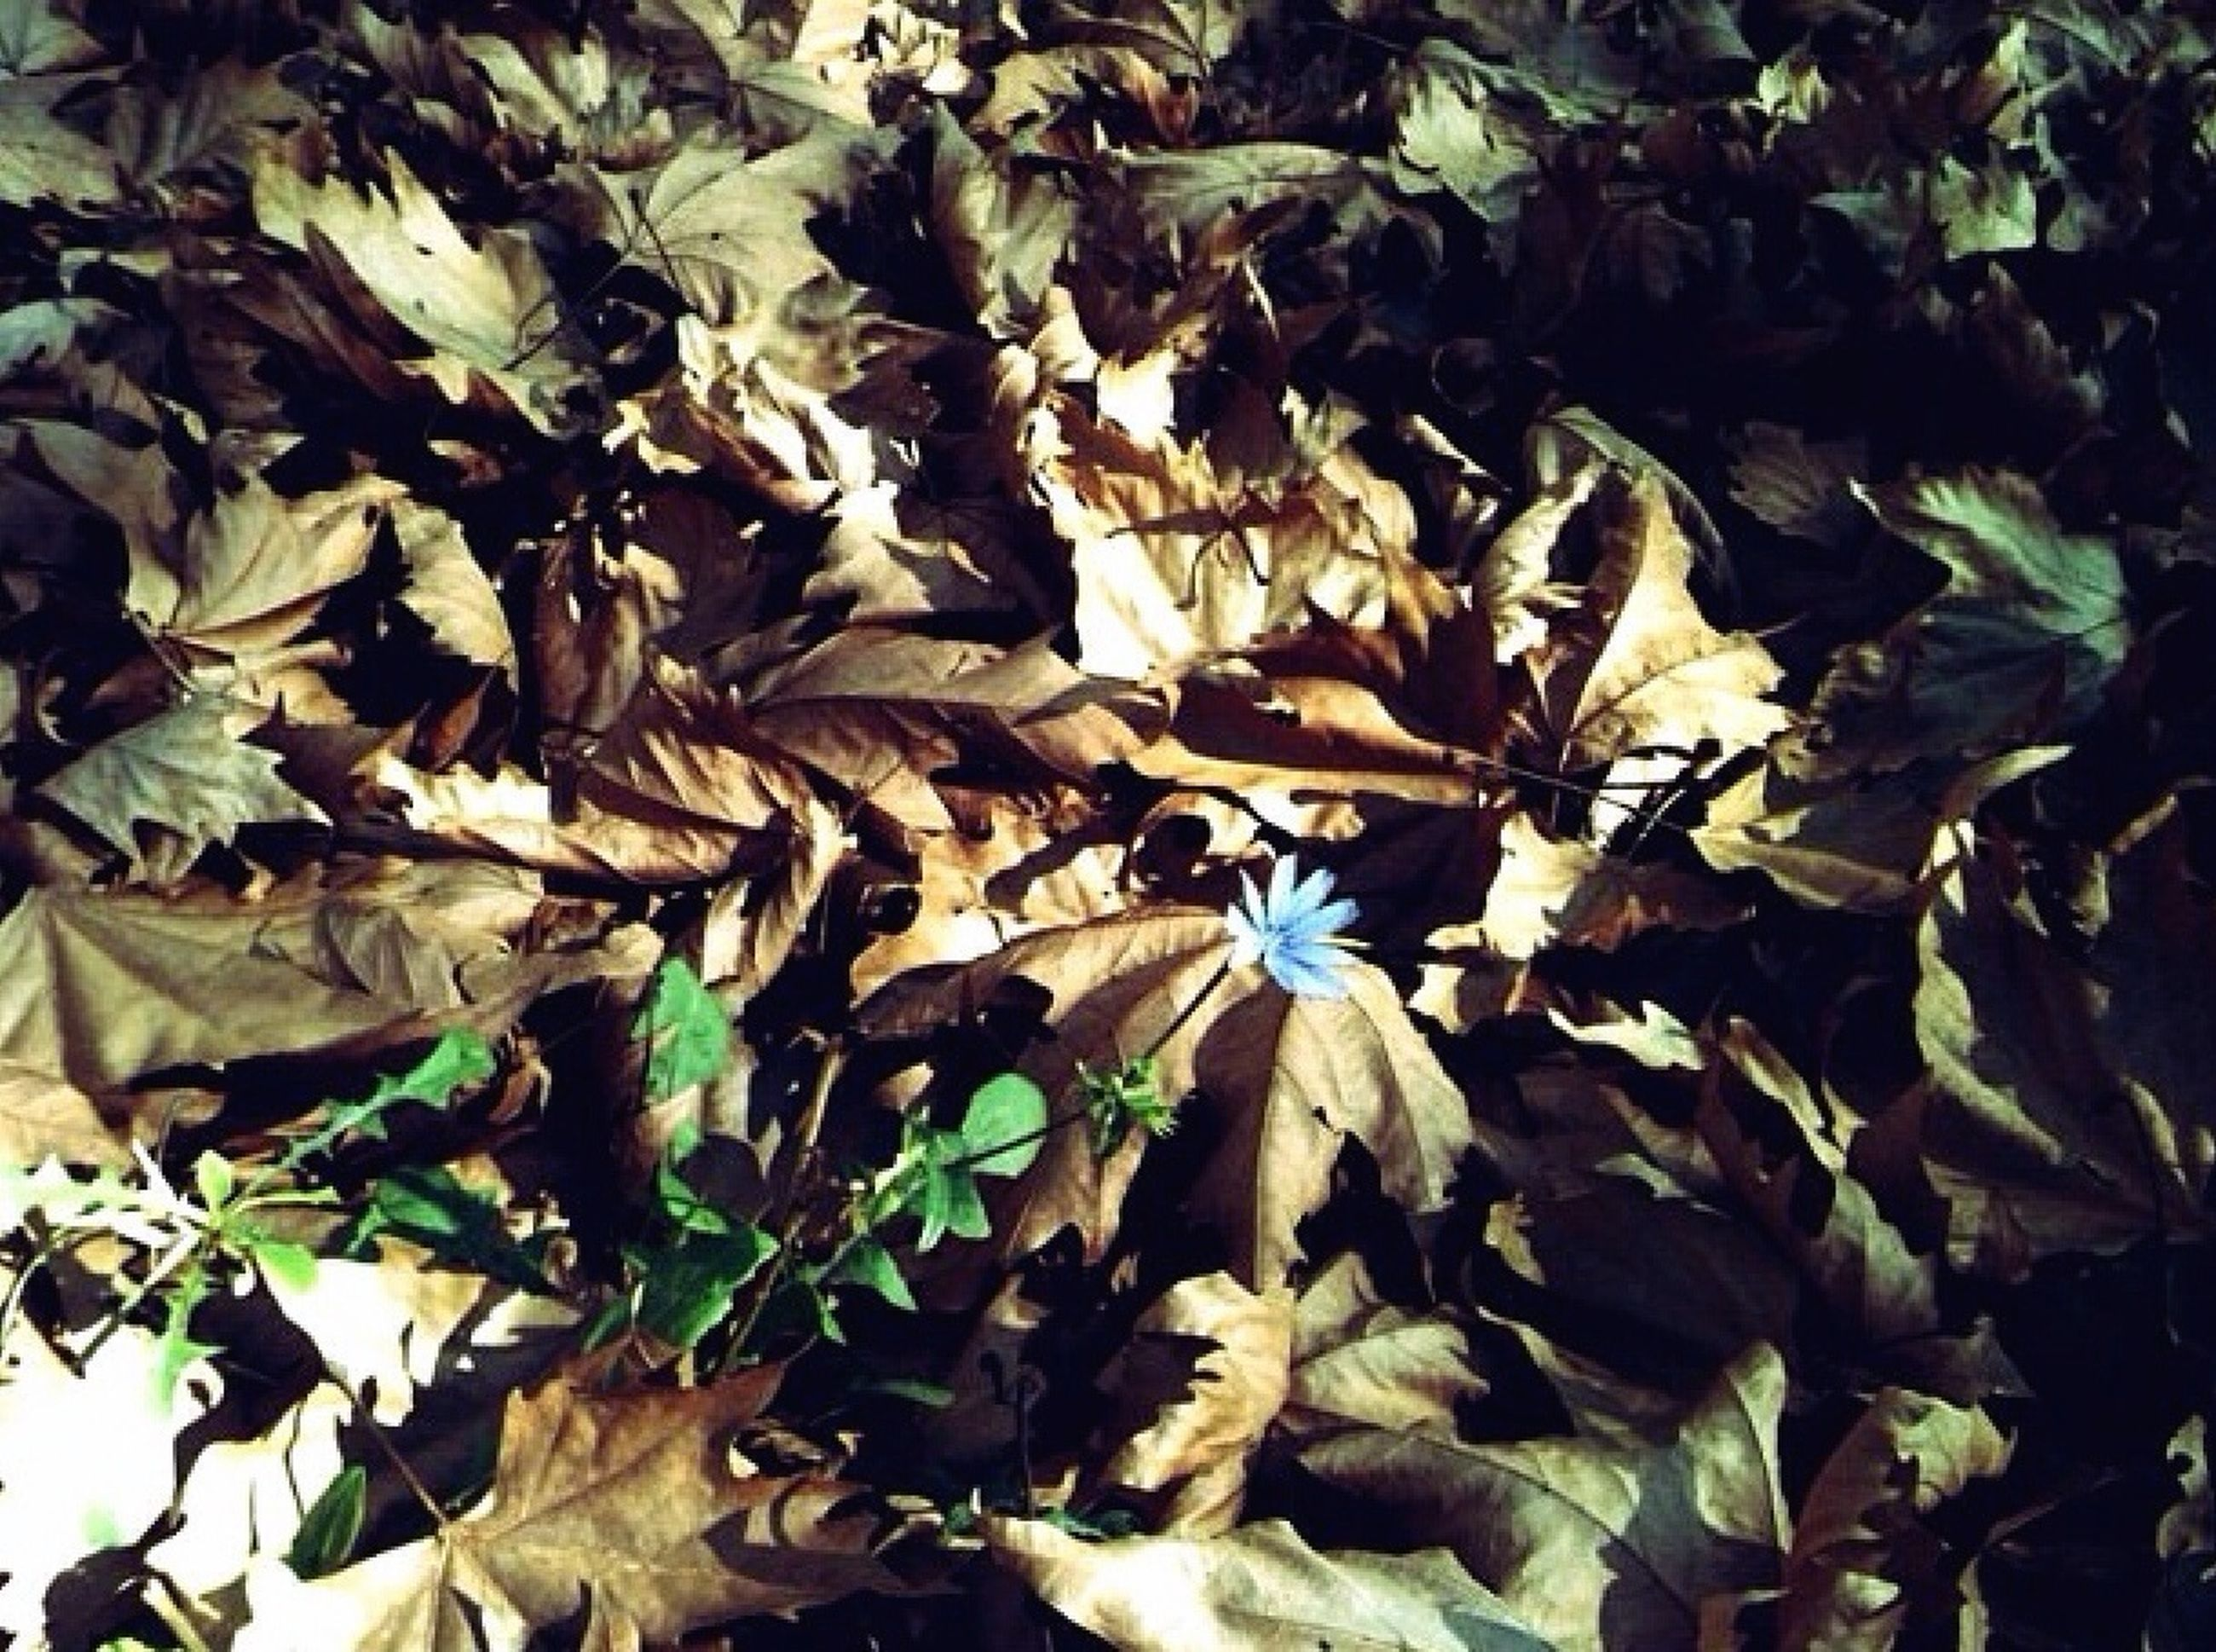 leaf, growth, nature, fragility, plant, high angle view, beauty in nature, freshness, leaves, flower, close-up, green color, field, no people, day, petal, outdoors, season, dry, abundance